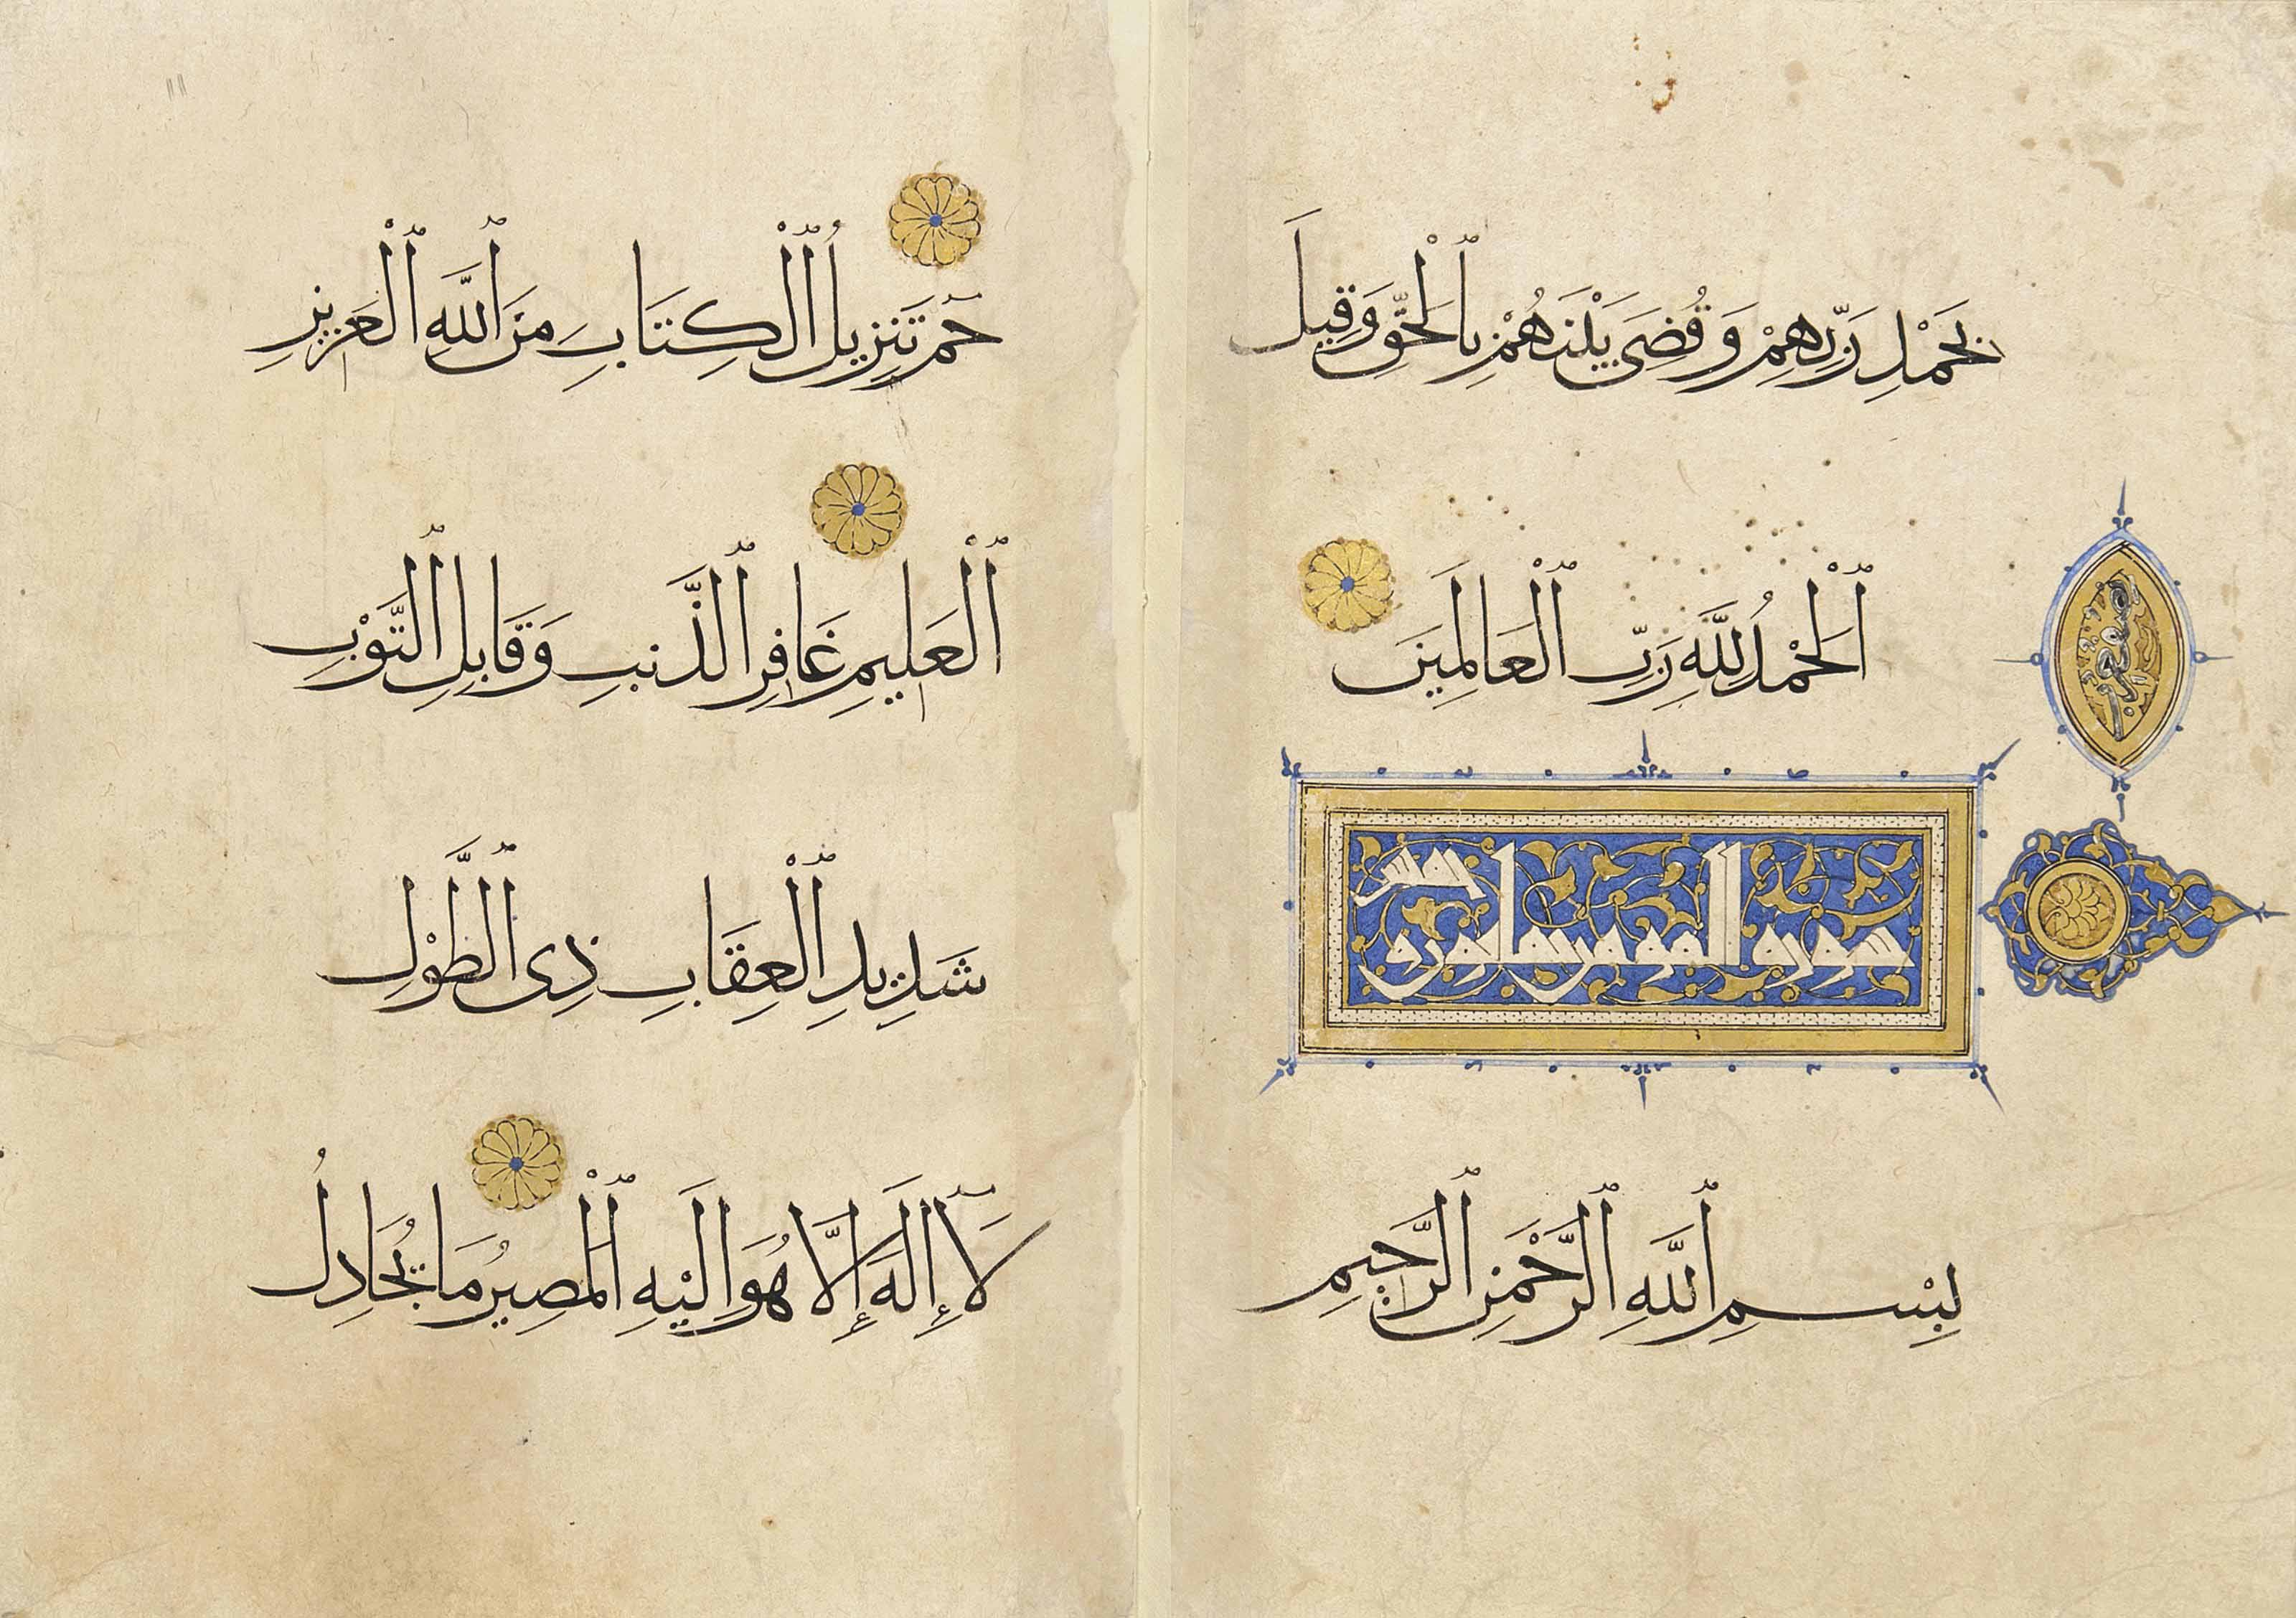 QUR'AN SECTION